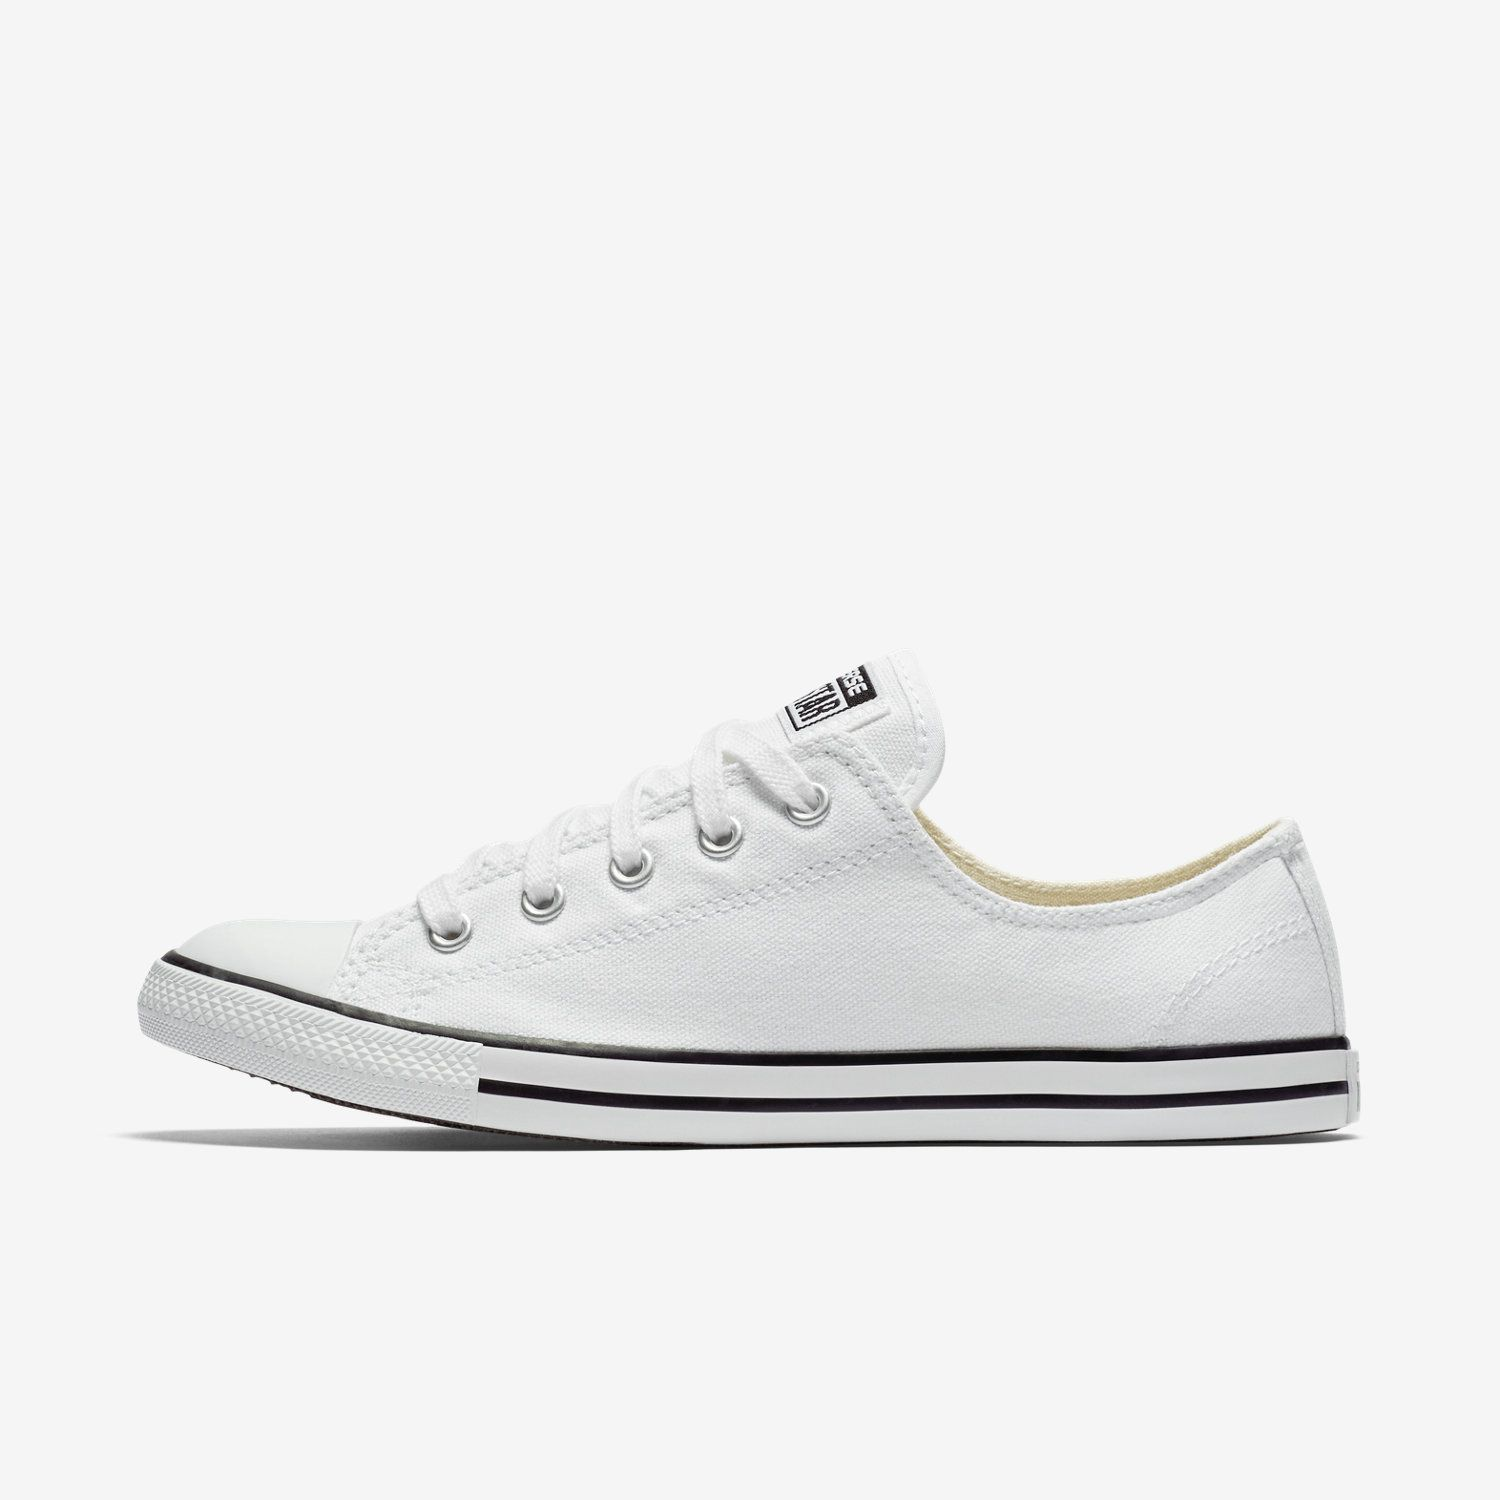 Converse Tennis Shoes – For Tennis